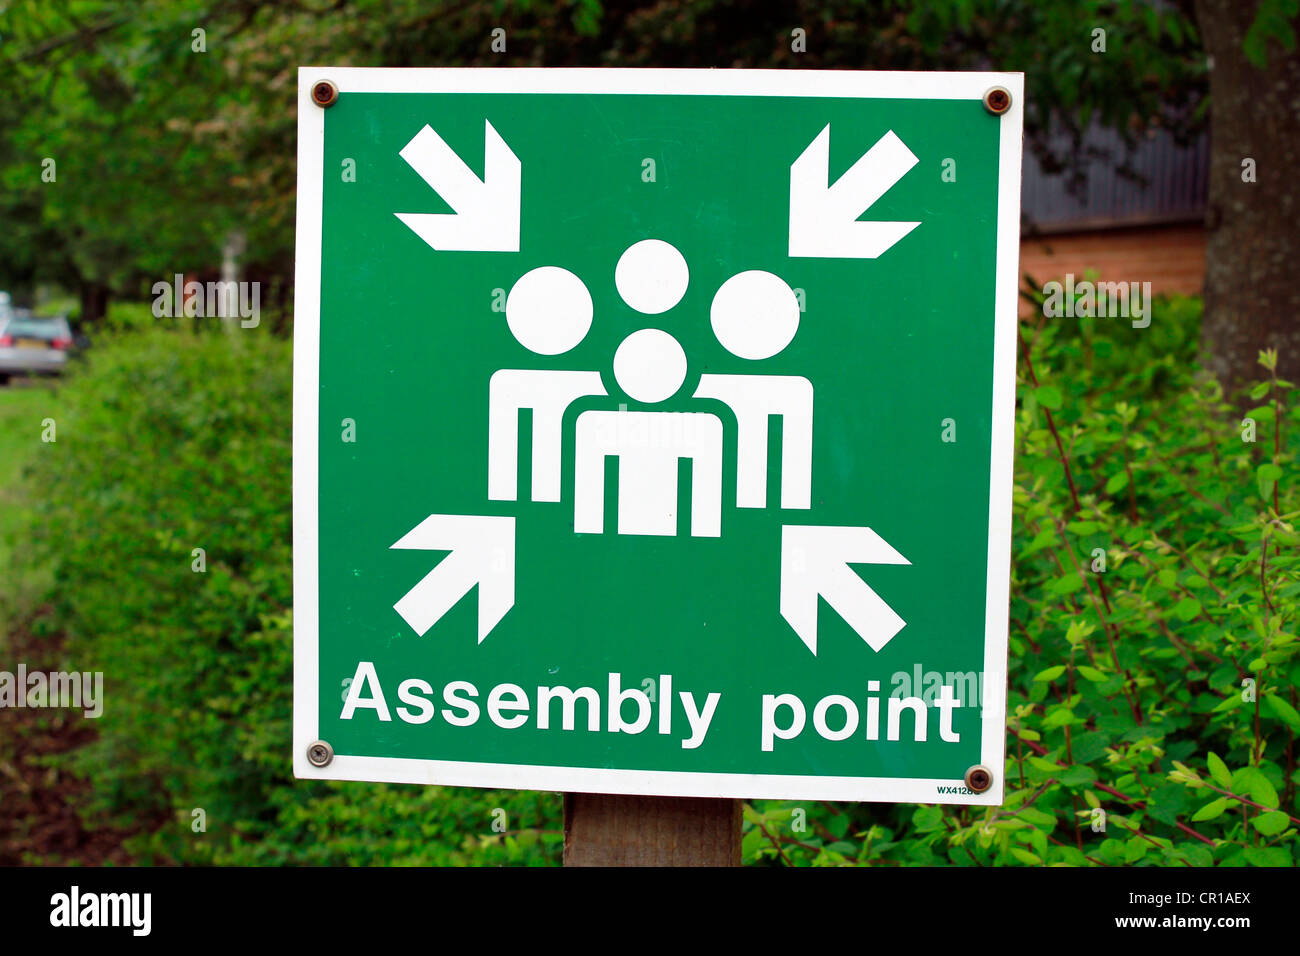 Assembly point sign - Stock Image